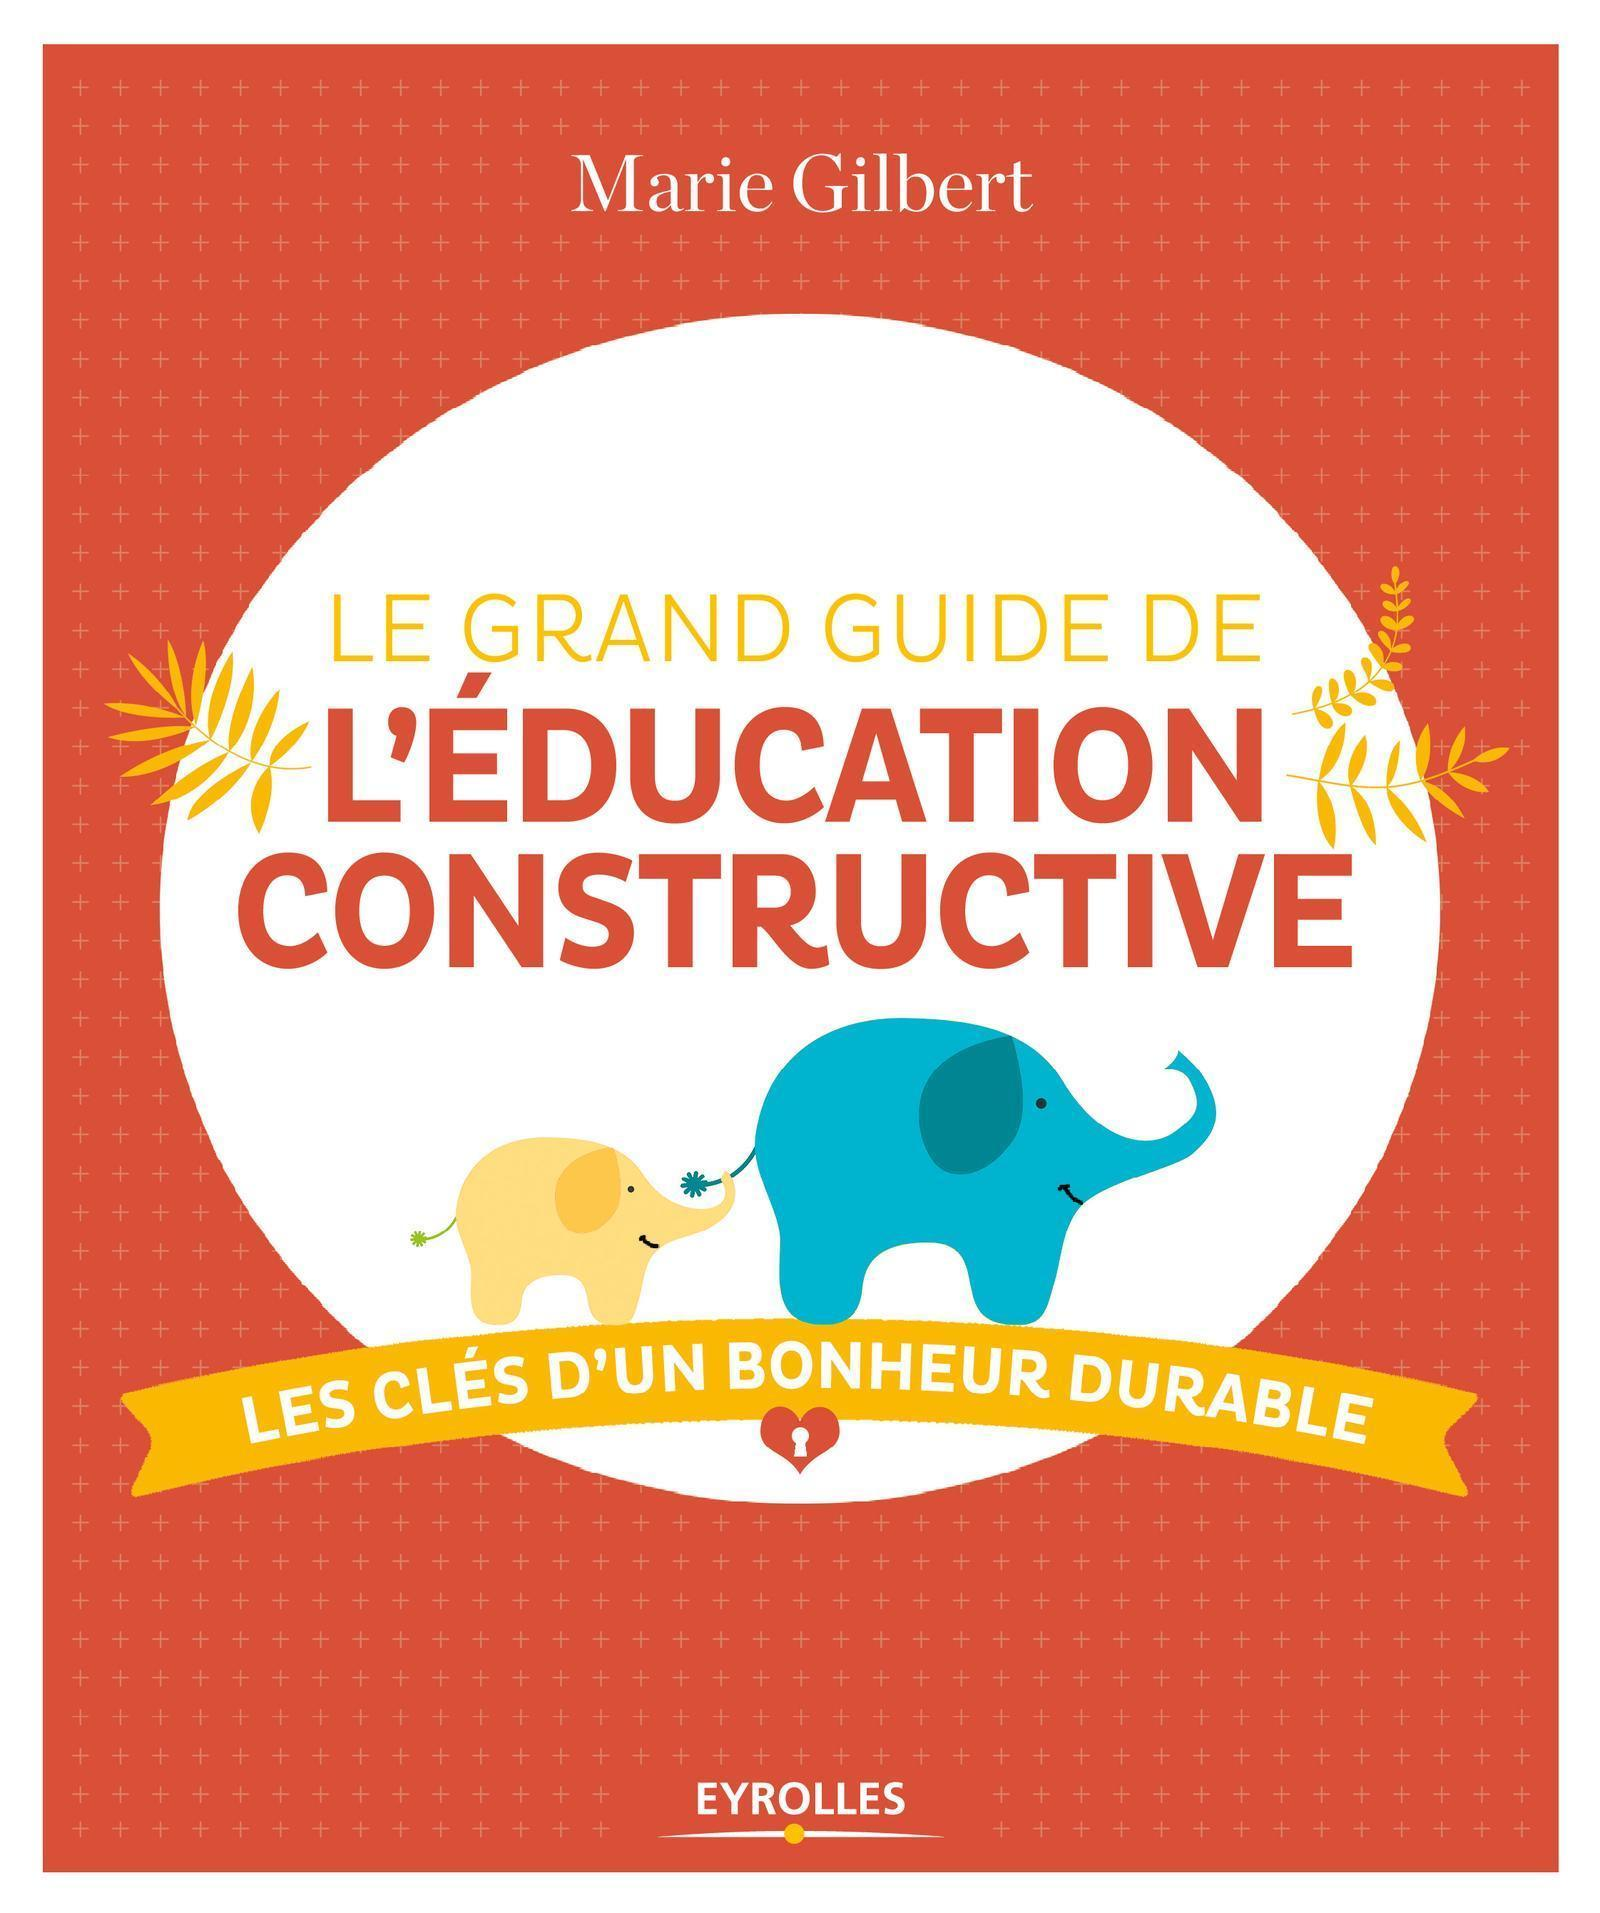 LE GRAND GUIDE DE L'EDUCATION CONSTRUCTIVE